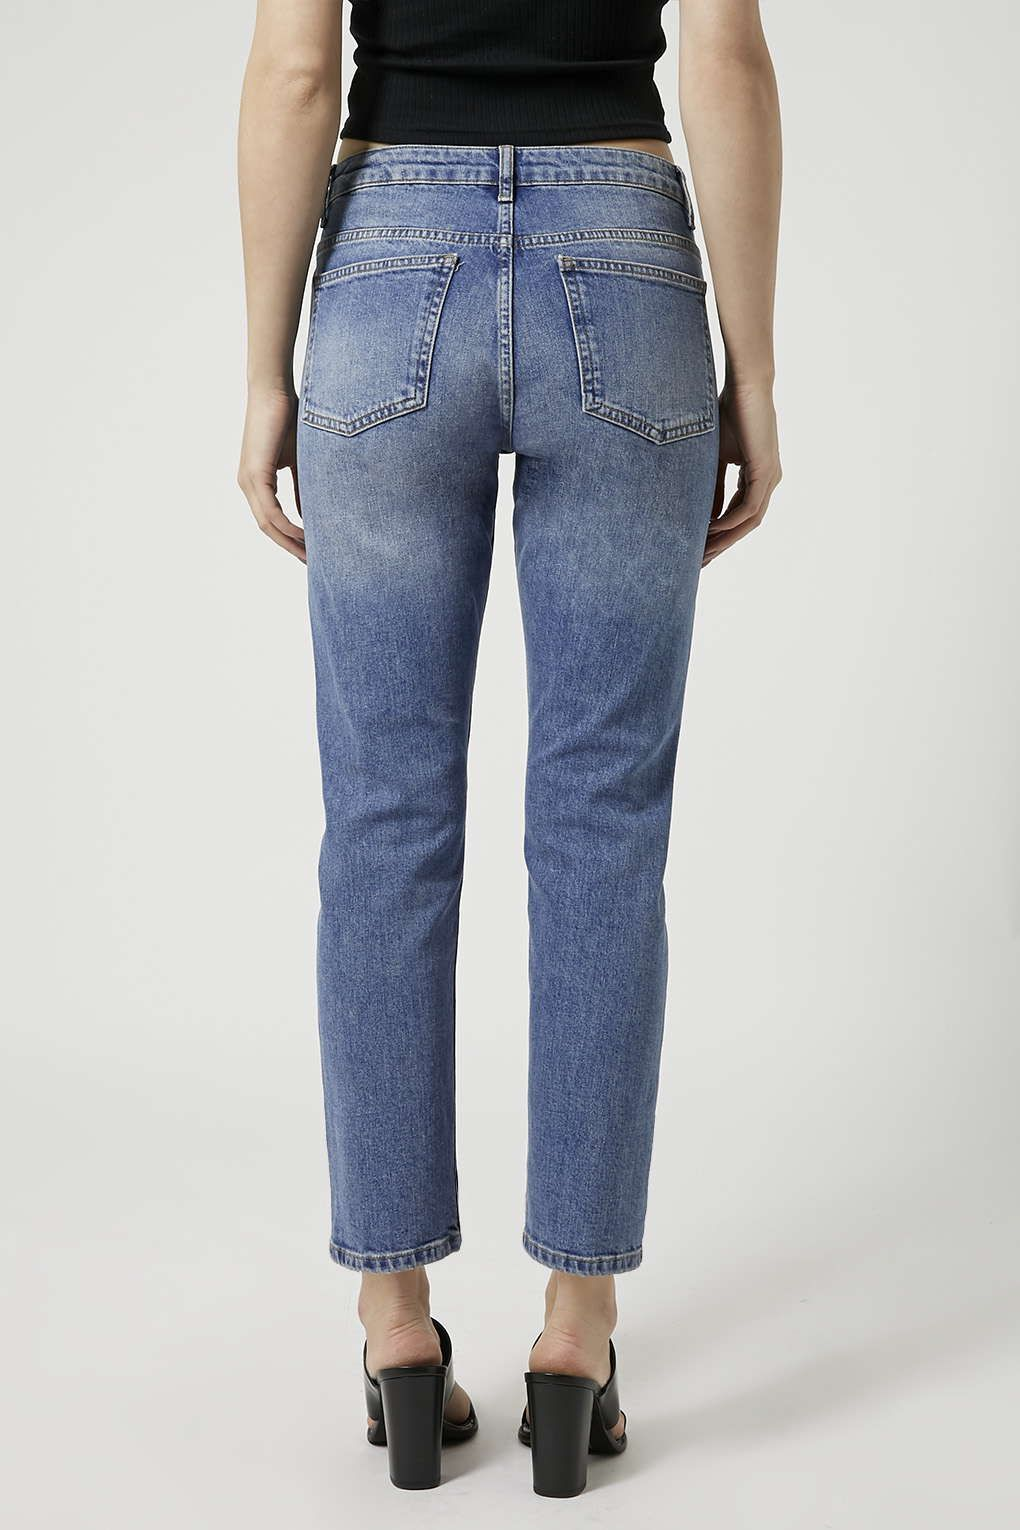 d8a1cd819774f MOTO Mid Blue Girlfriend Jeans - Jeans - Clothing - Topshop ...